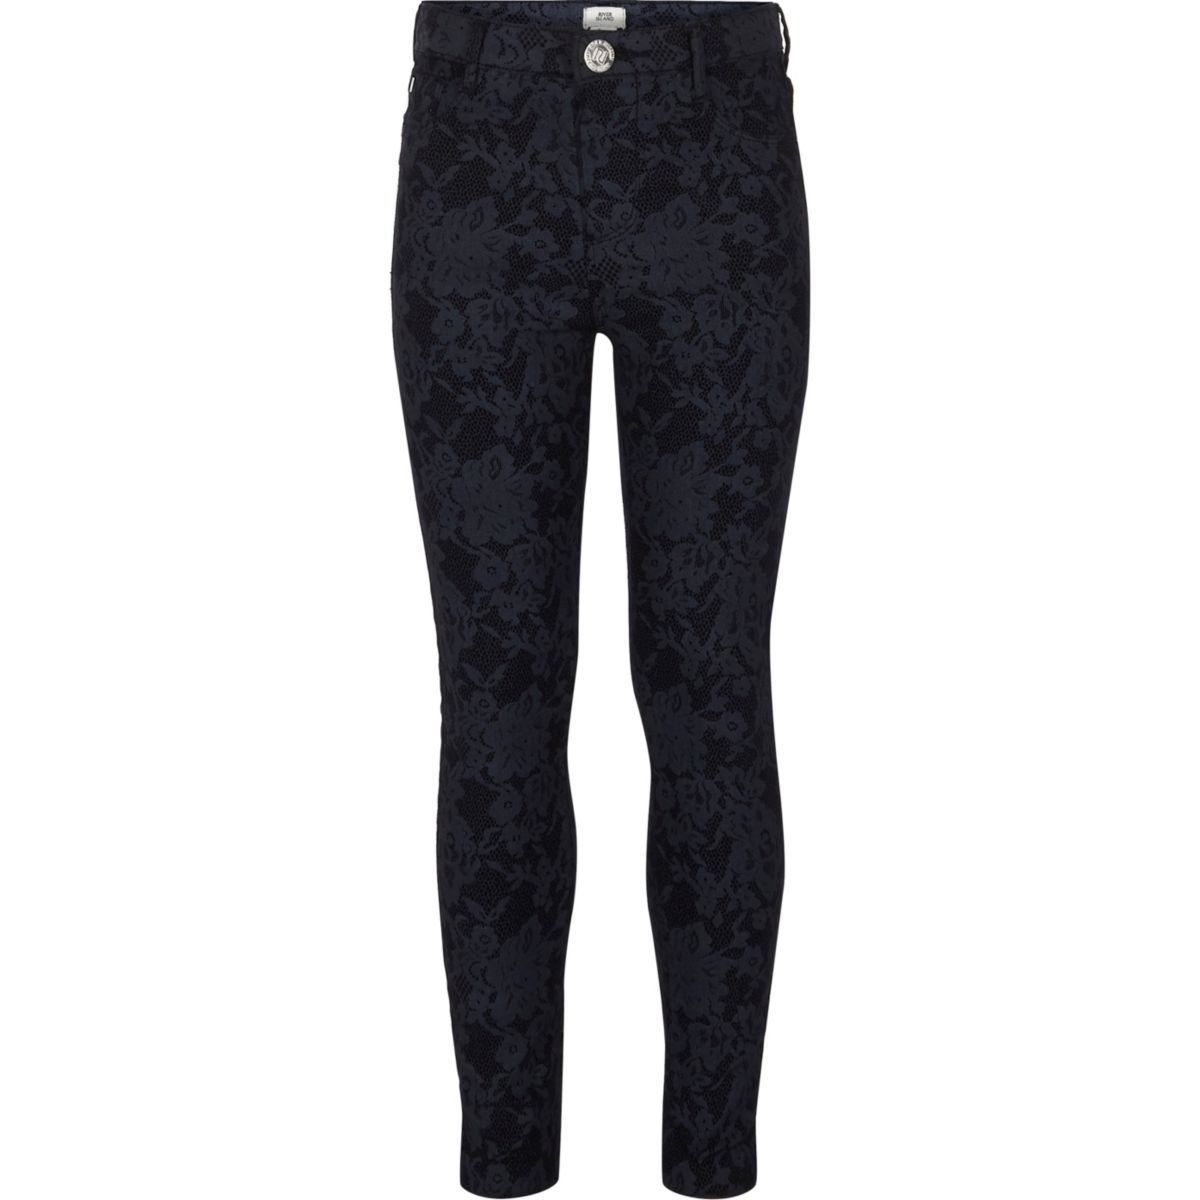 Girls dark blue floral lace Molly jeggings